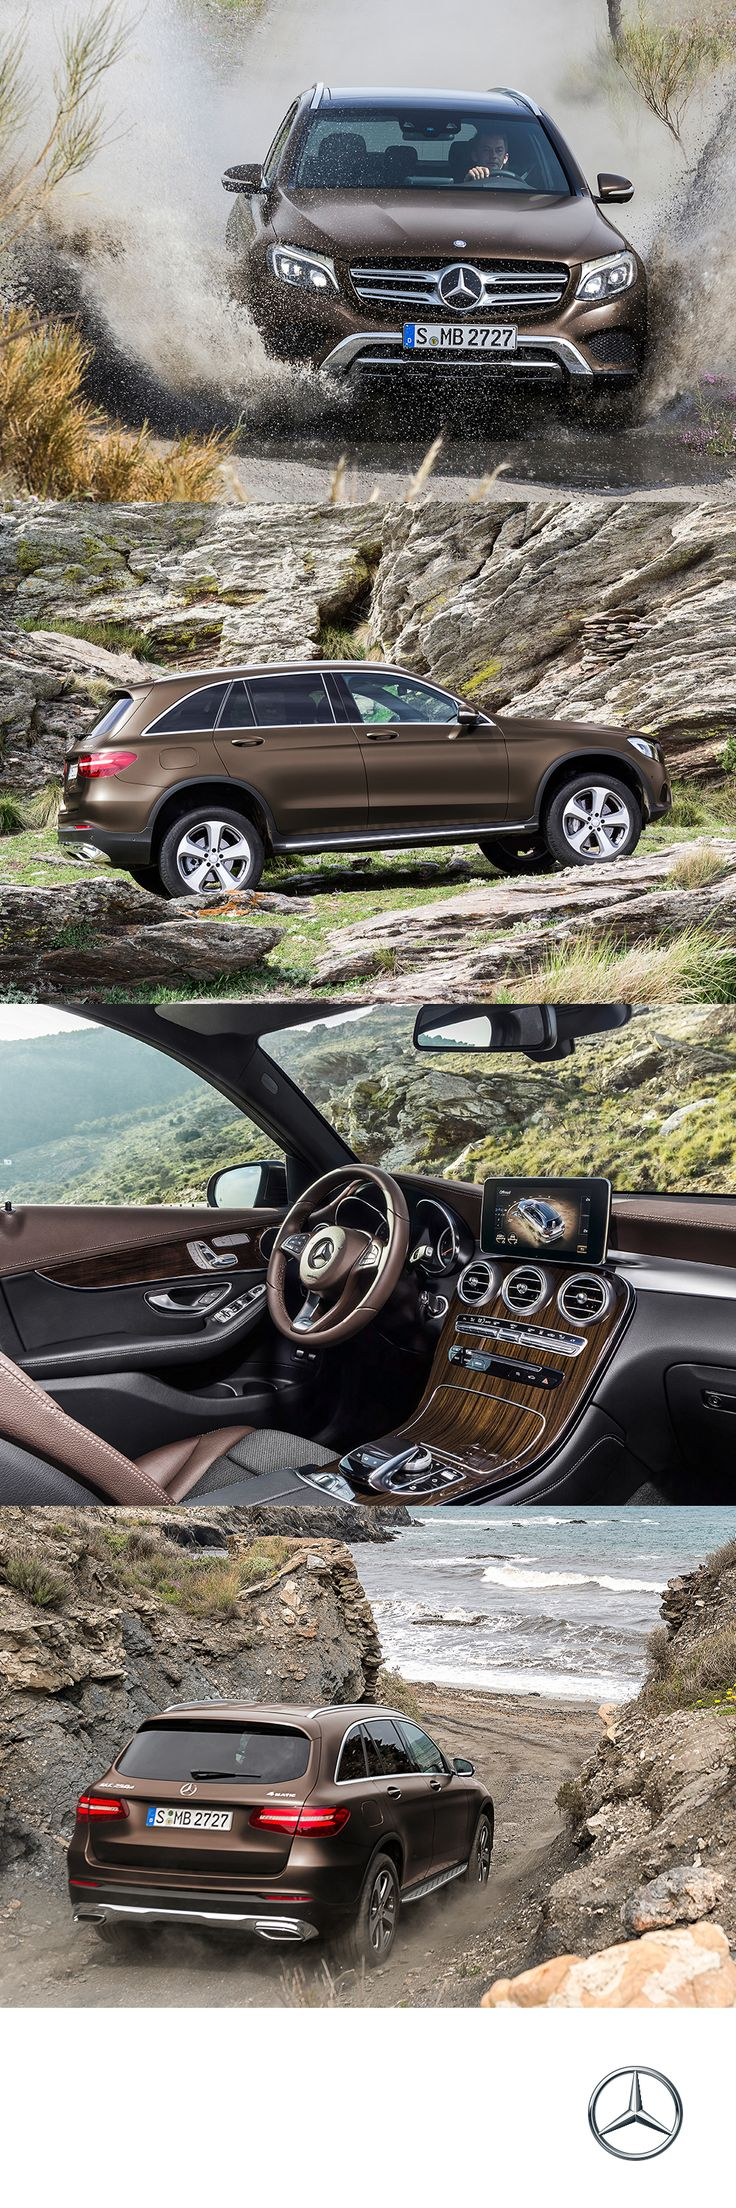 Every SUV gives you a commanding view of the road, the GLC is one of the few to give you power to command.